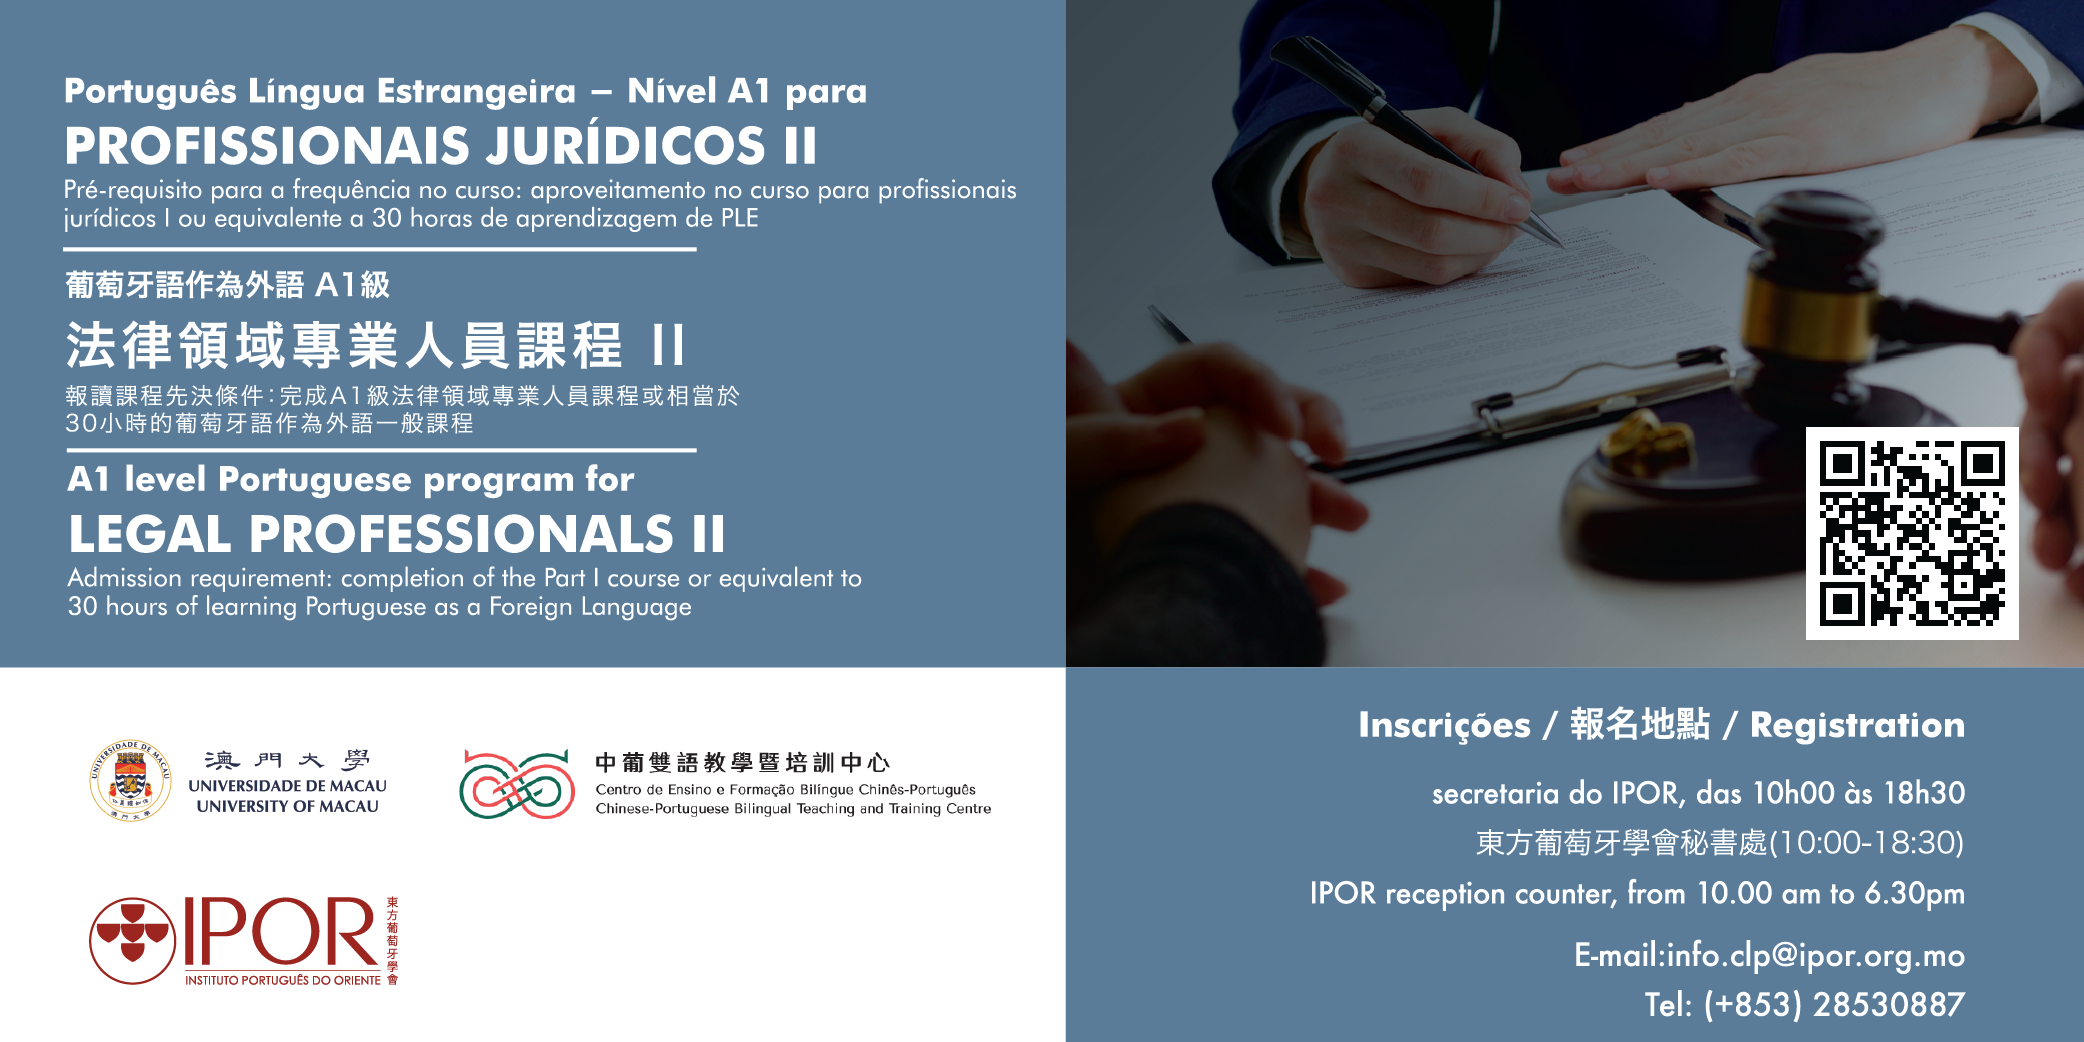 http://ipor.mo/wp-content/uploads/2020/01/banner-curso-juridico-II-02-02.png